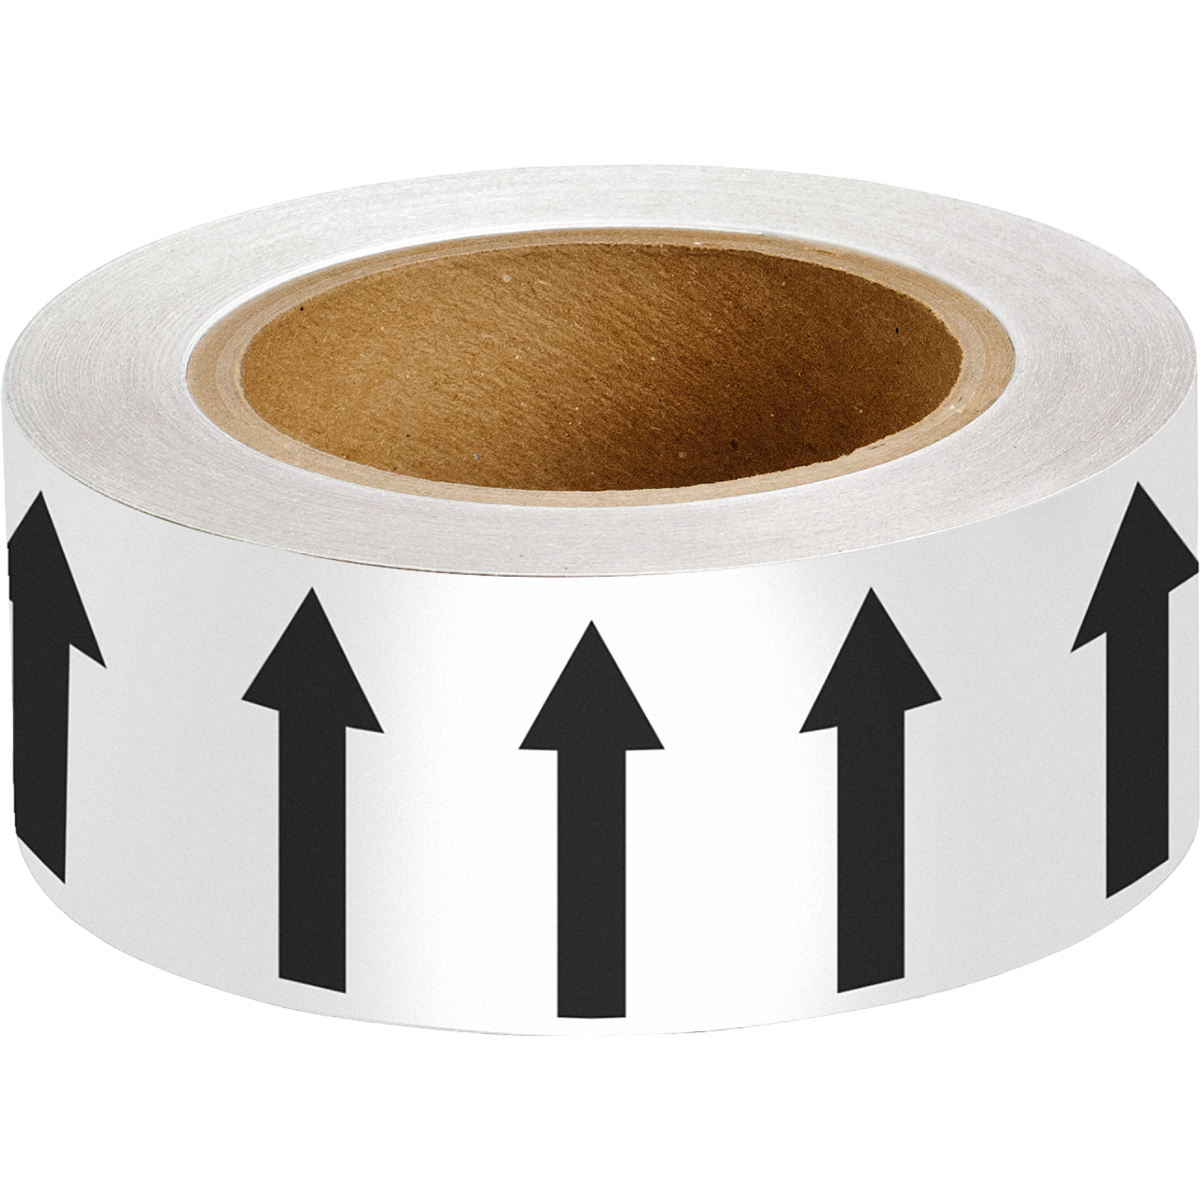 Black on White 50mm Directional Flow Arrow Tape